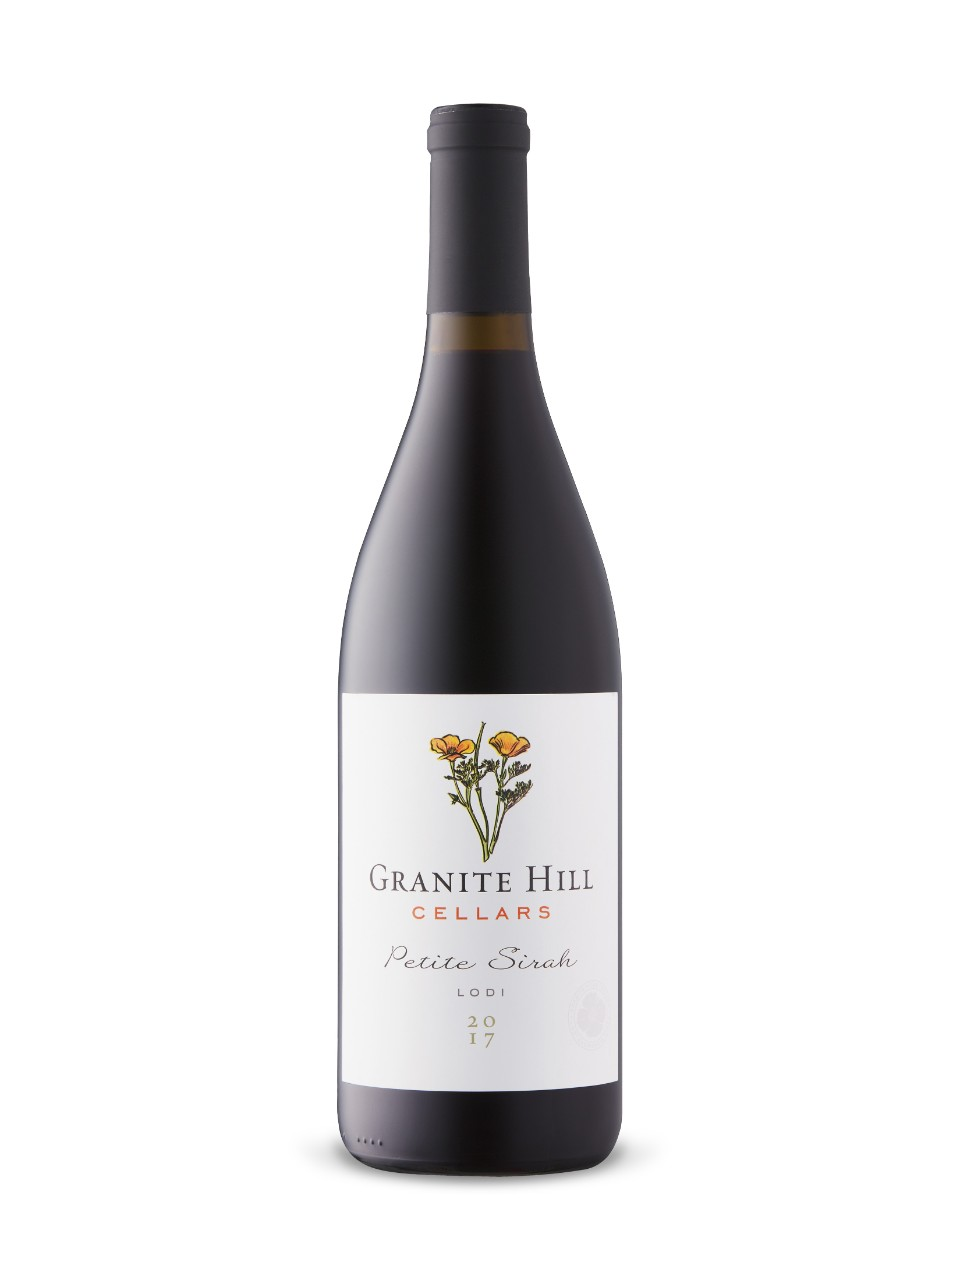 Granite Hill Petite Sirah 2017 from LCBO